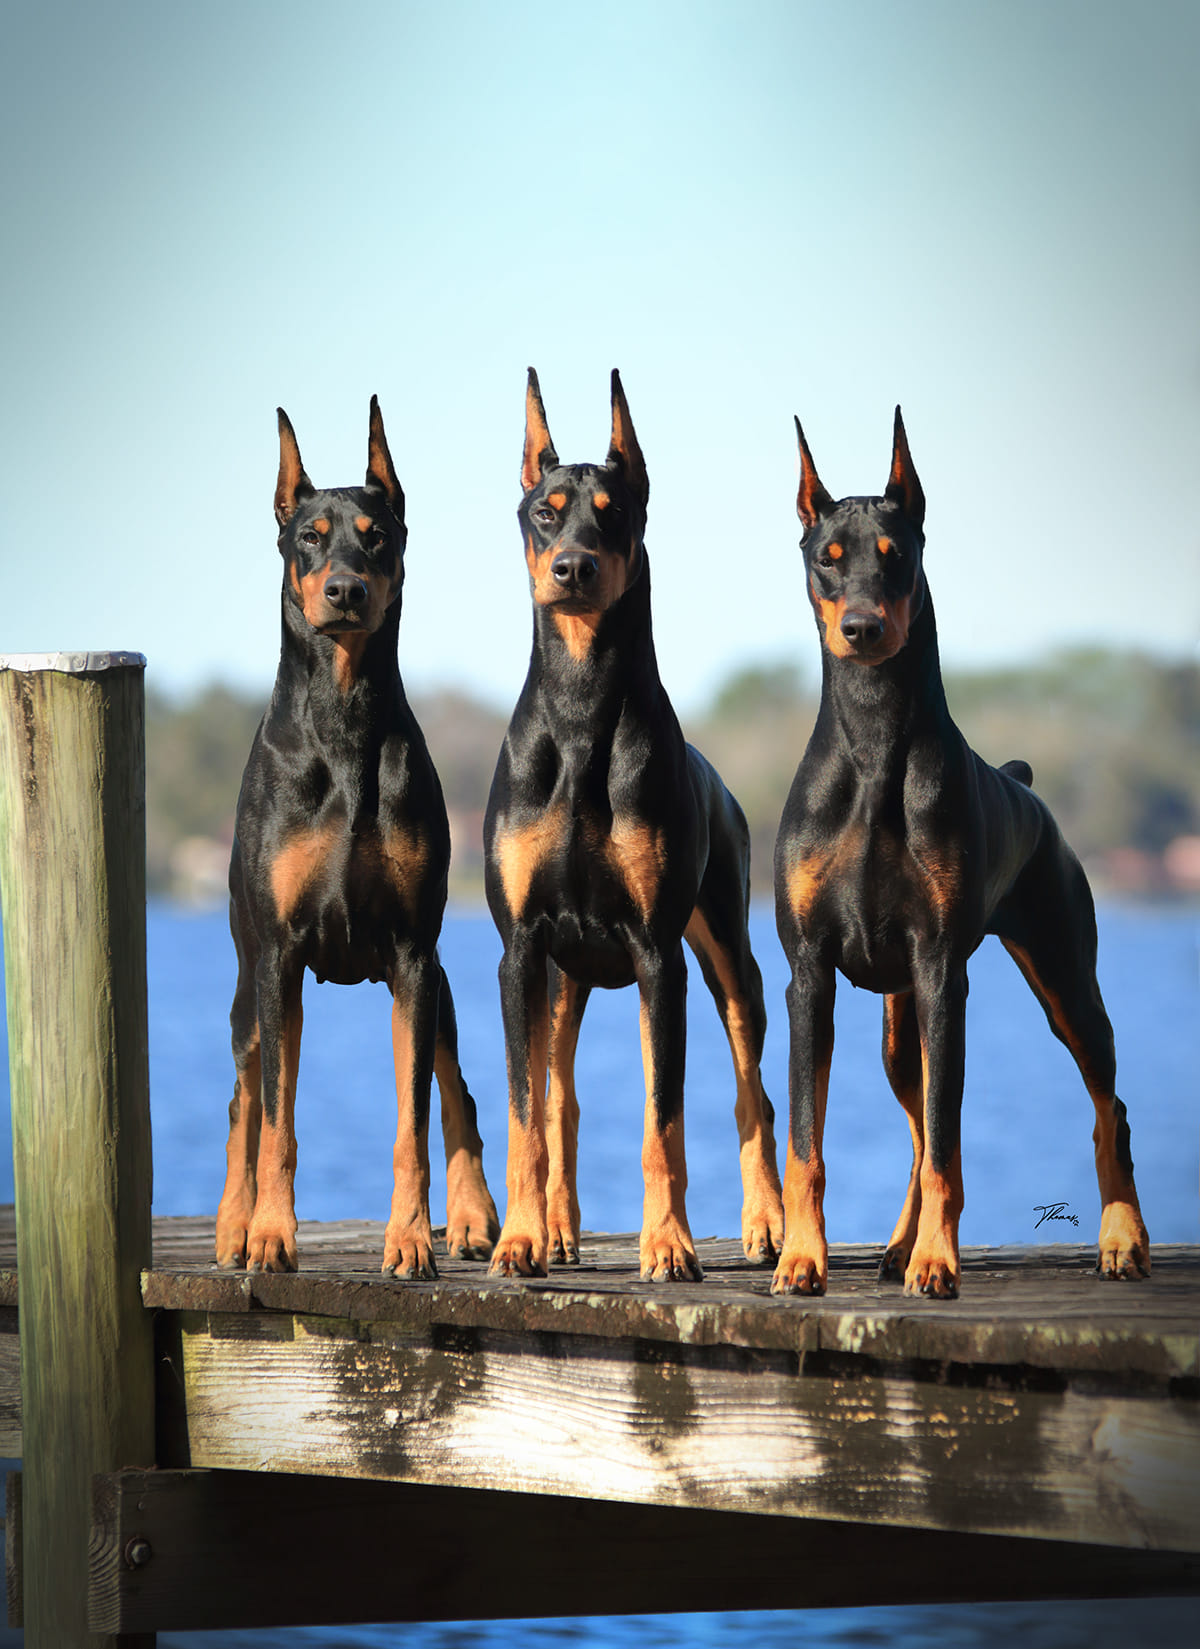 Black Dobermans on dock by water